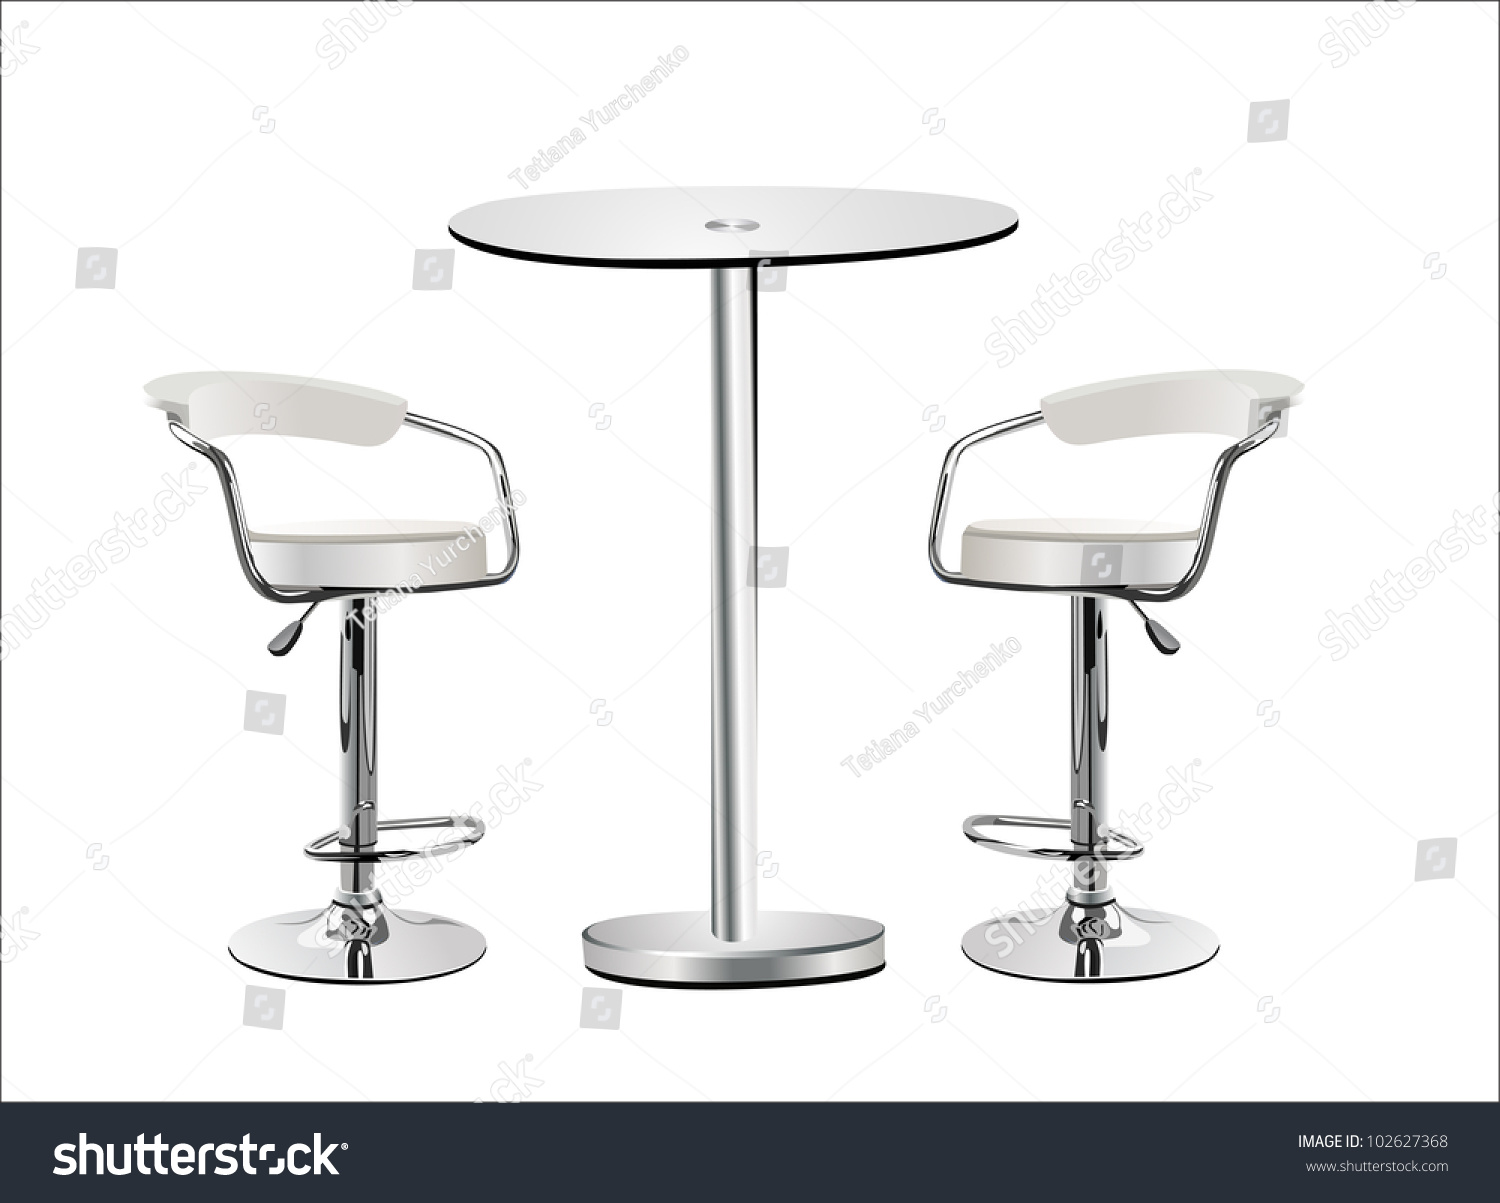 Table Top High Chair High Glass Top Table W Chairs Stock Vector 102627368